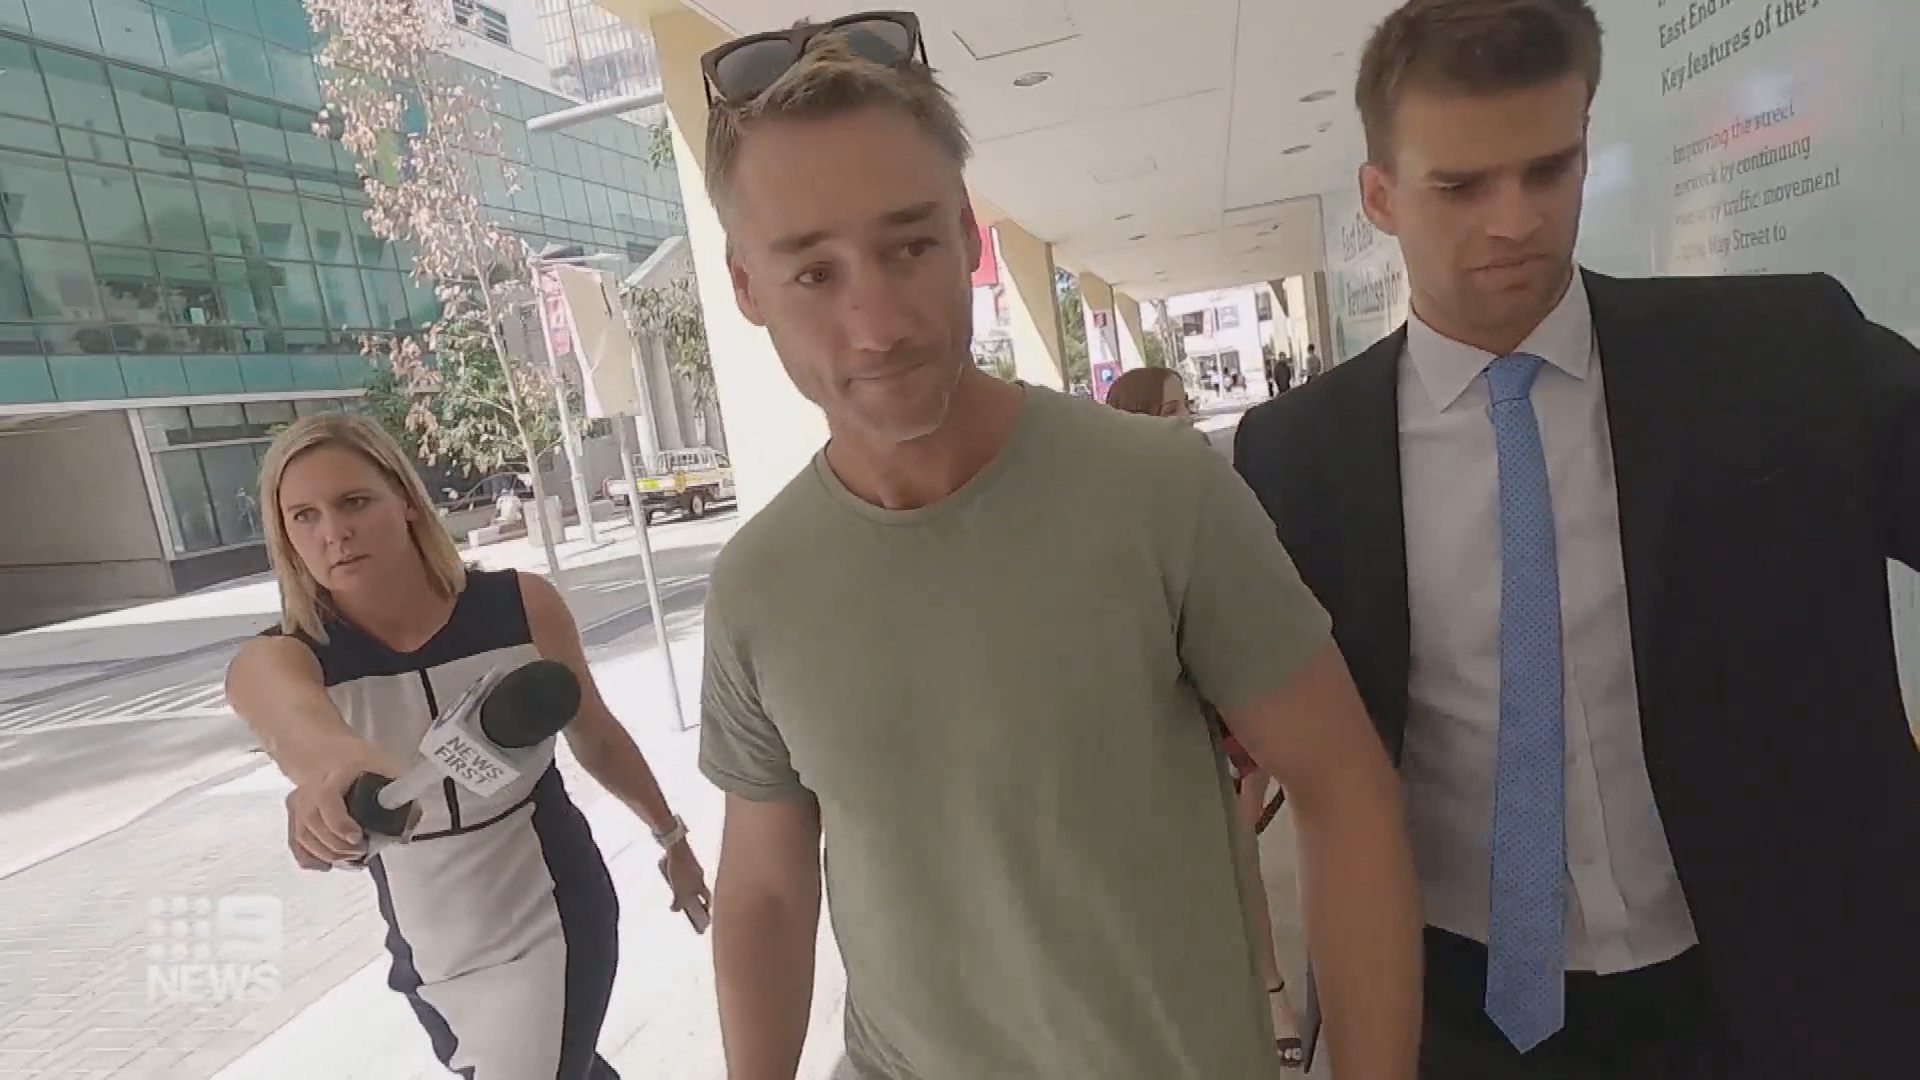 Former AFL player Adam Hunter faces court charged with domestic violence